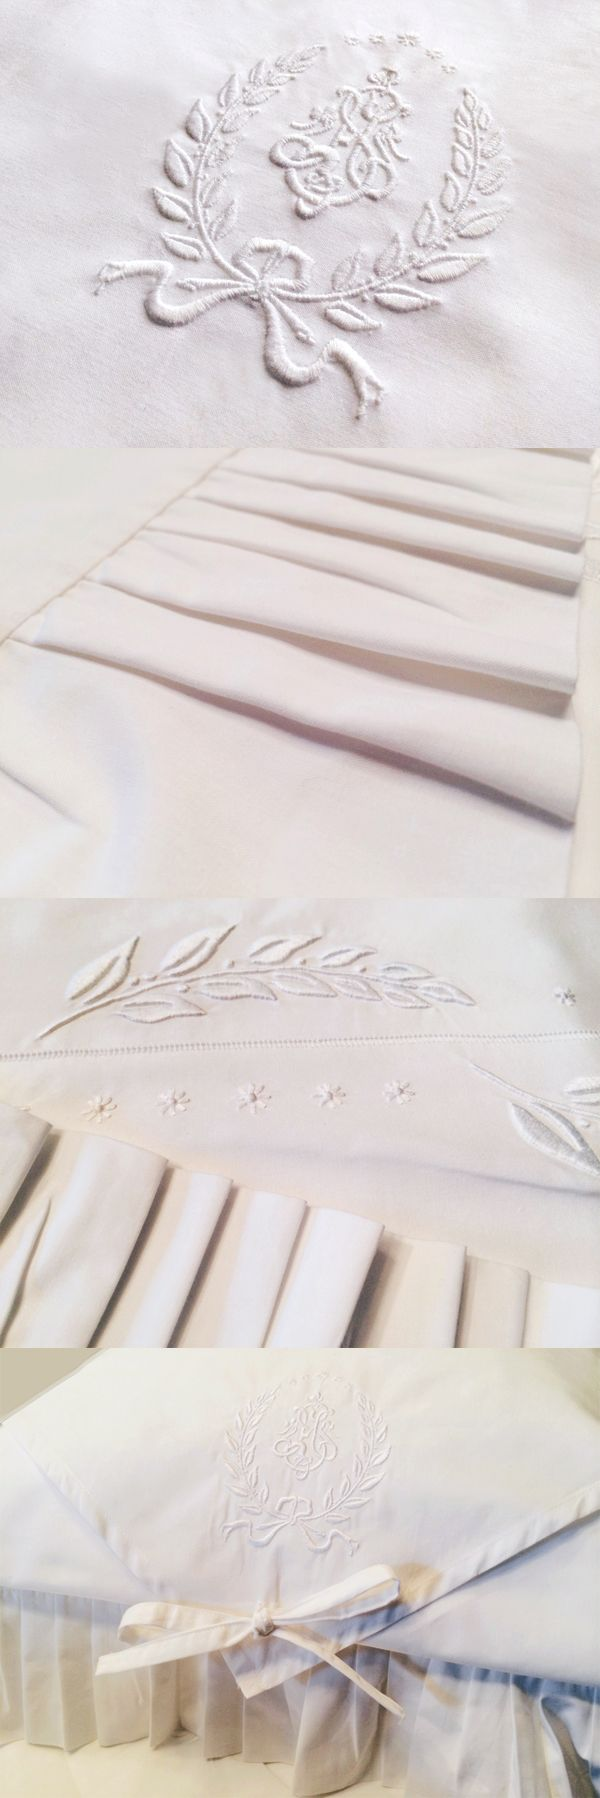 Bed Linen Embroidery First Prototype | By ROMÂNICO Bordados for Stroganov Hotel